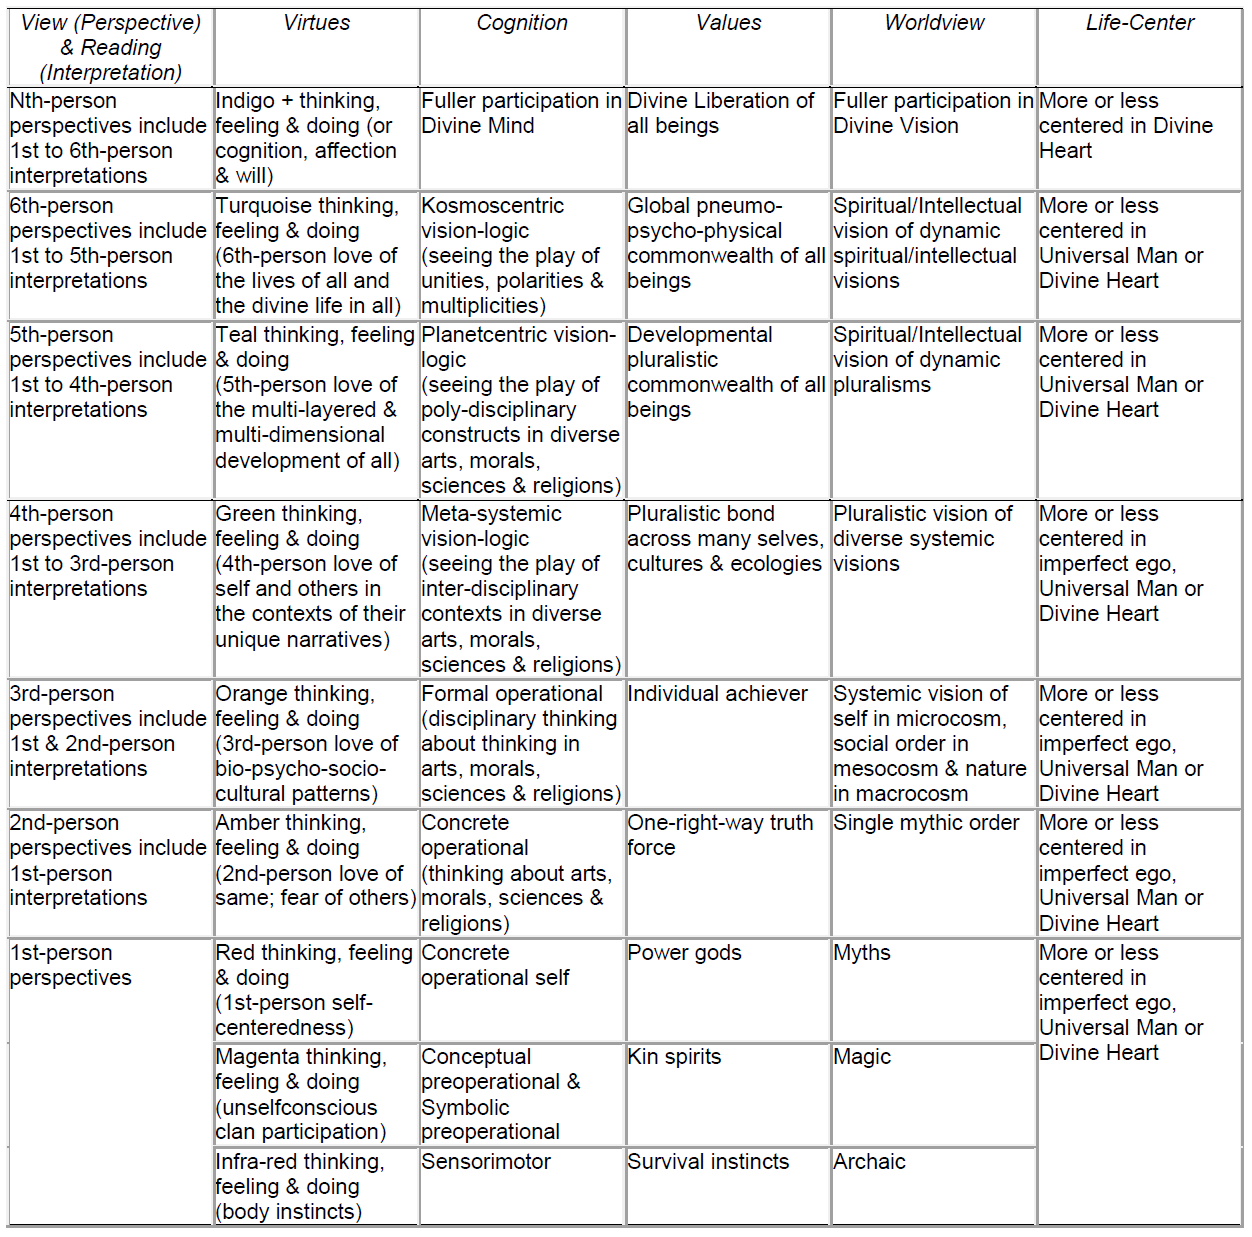 Table 2. Levels of Vision and Interpretation of Mind in Individuals and Societies in Premodern, Modern, and Postmodern Times in Maya.